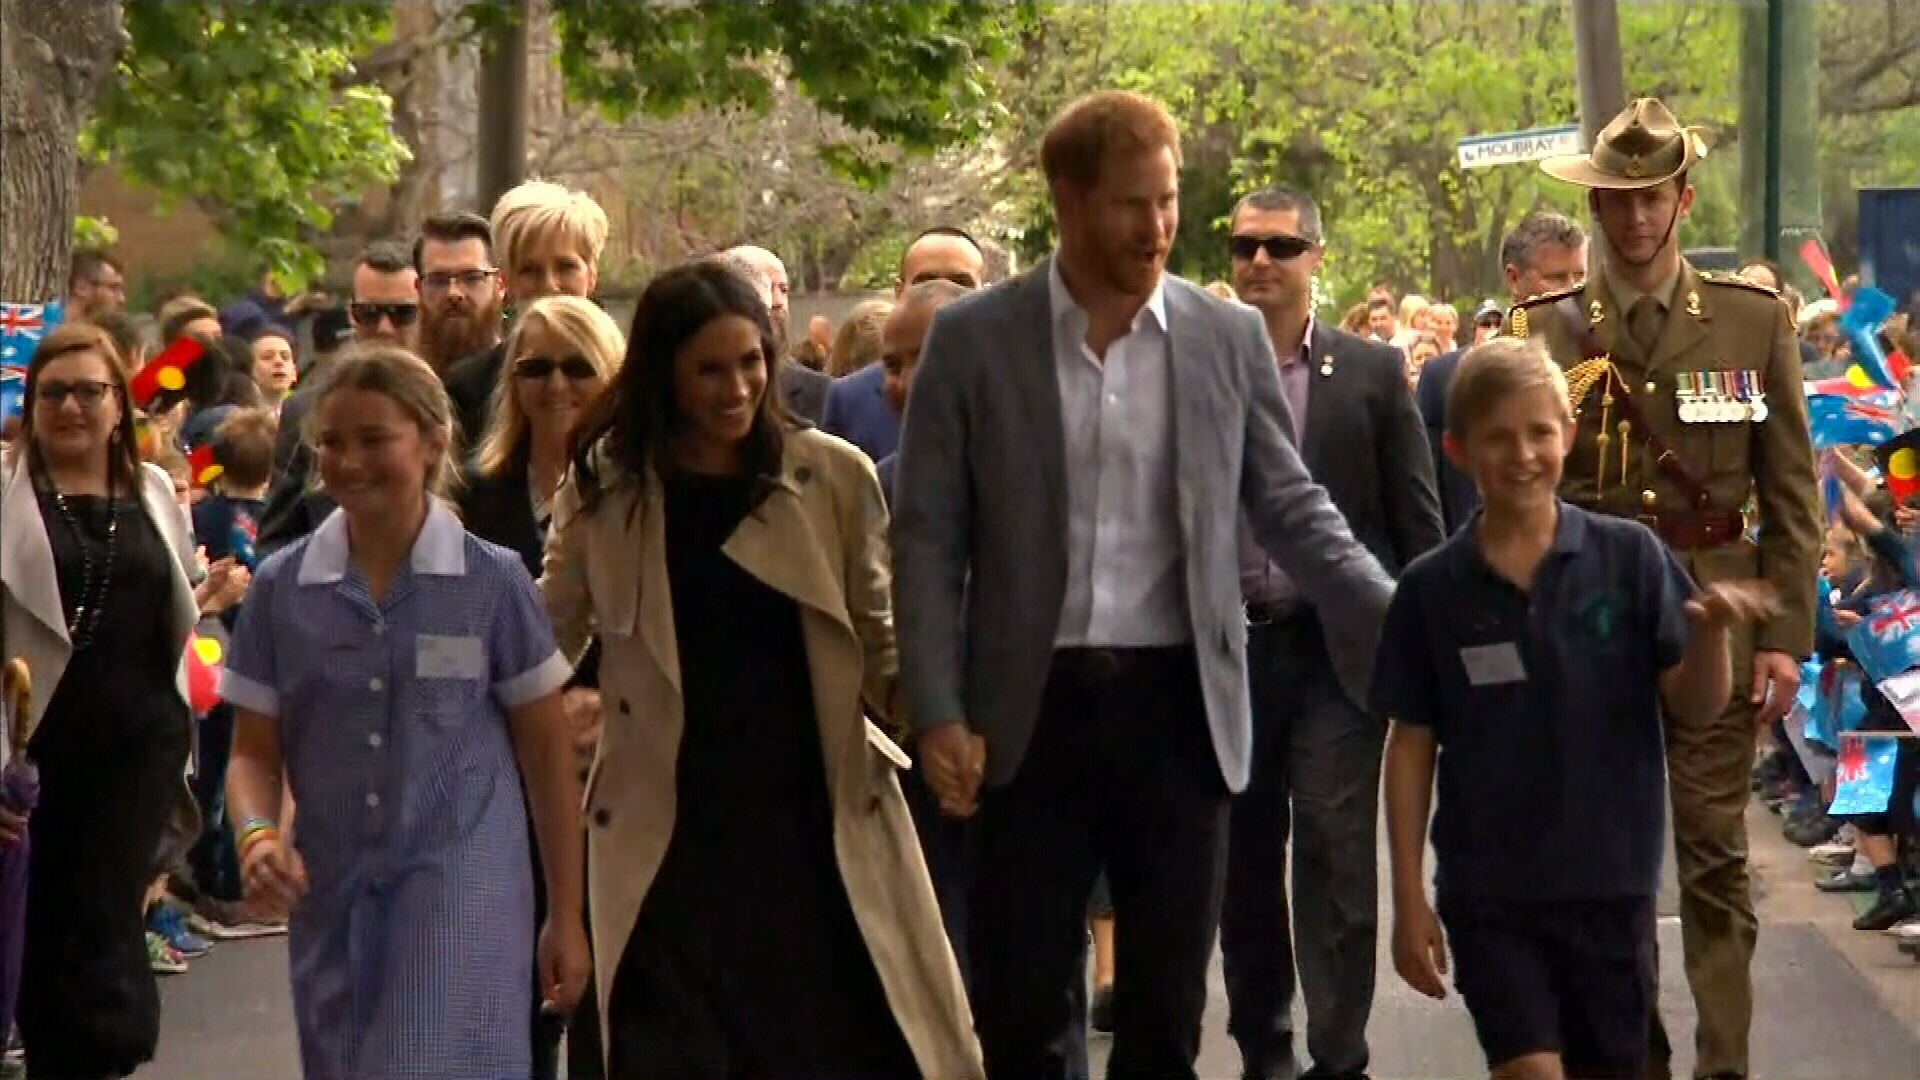 Prince Harry and Meghan arrive at Melbourne school